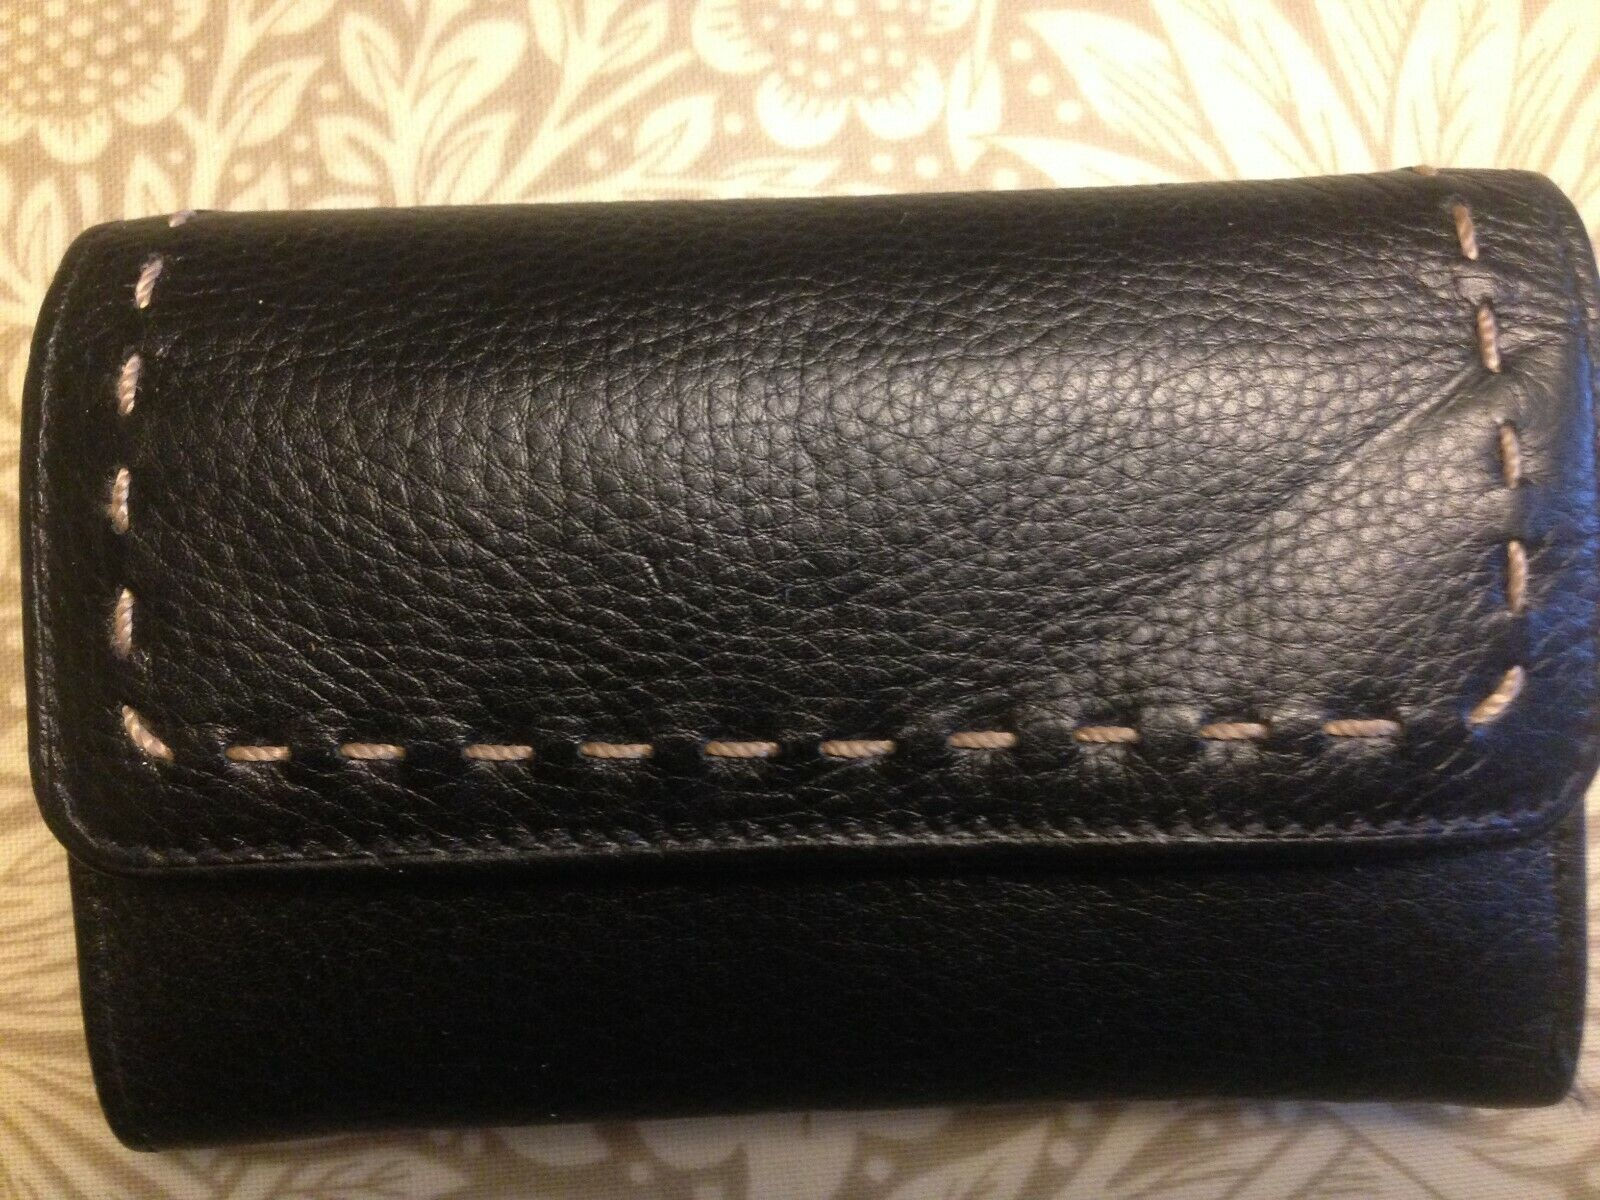 New no tags Black leather purse/wallet, 3 fold 5